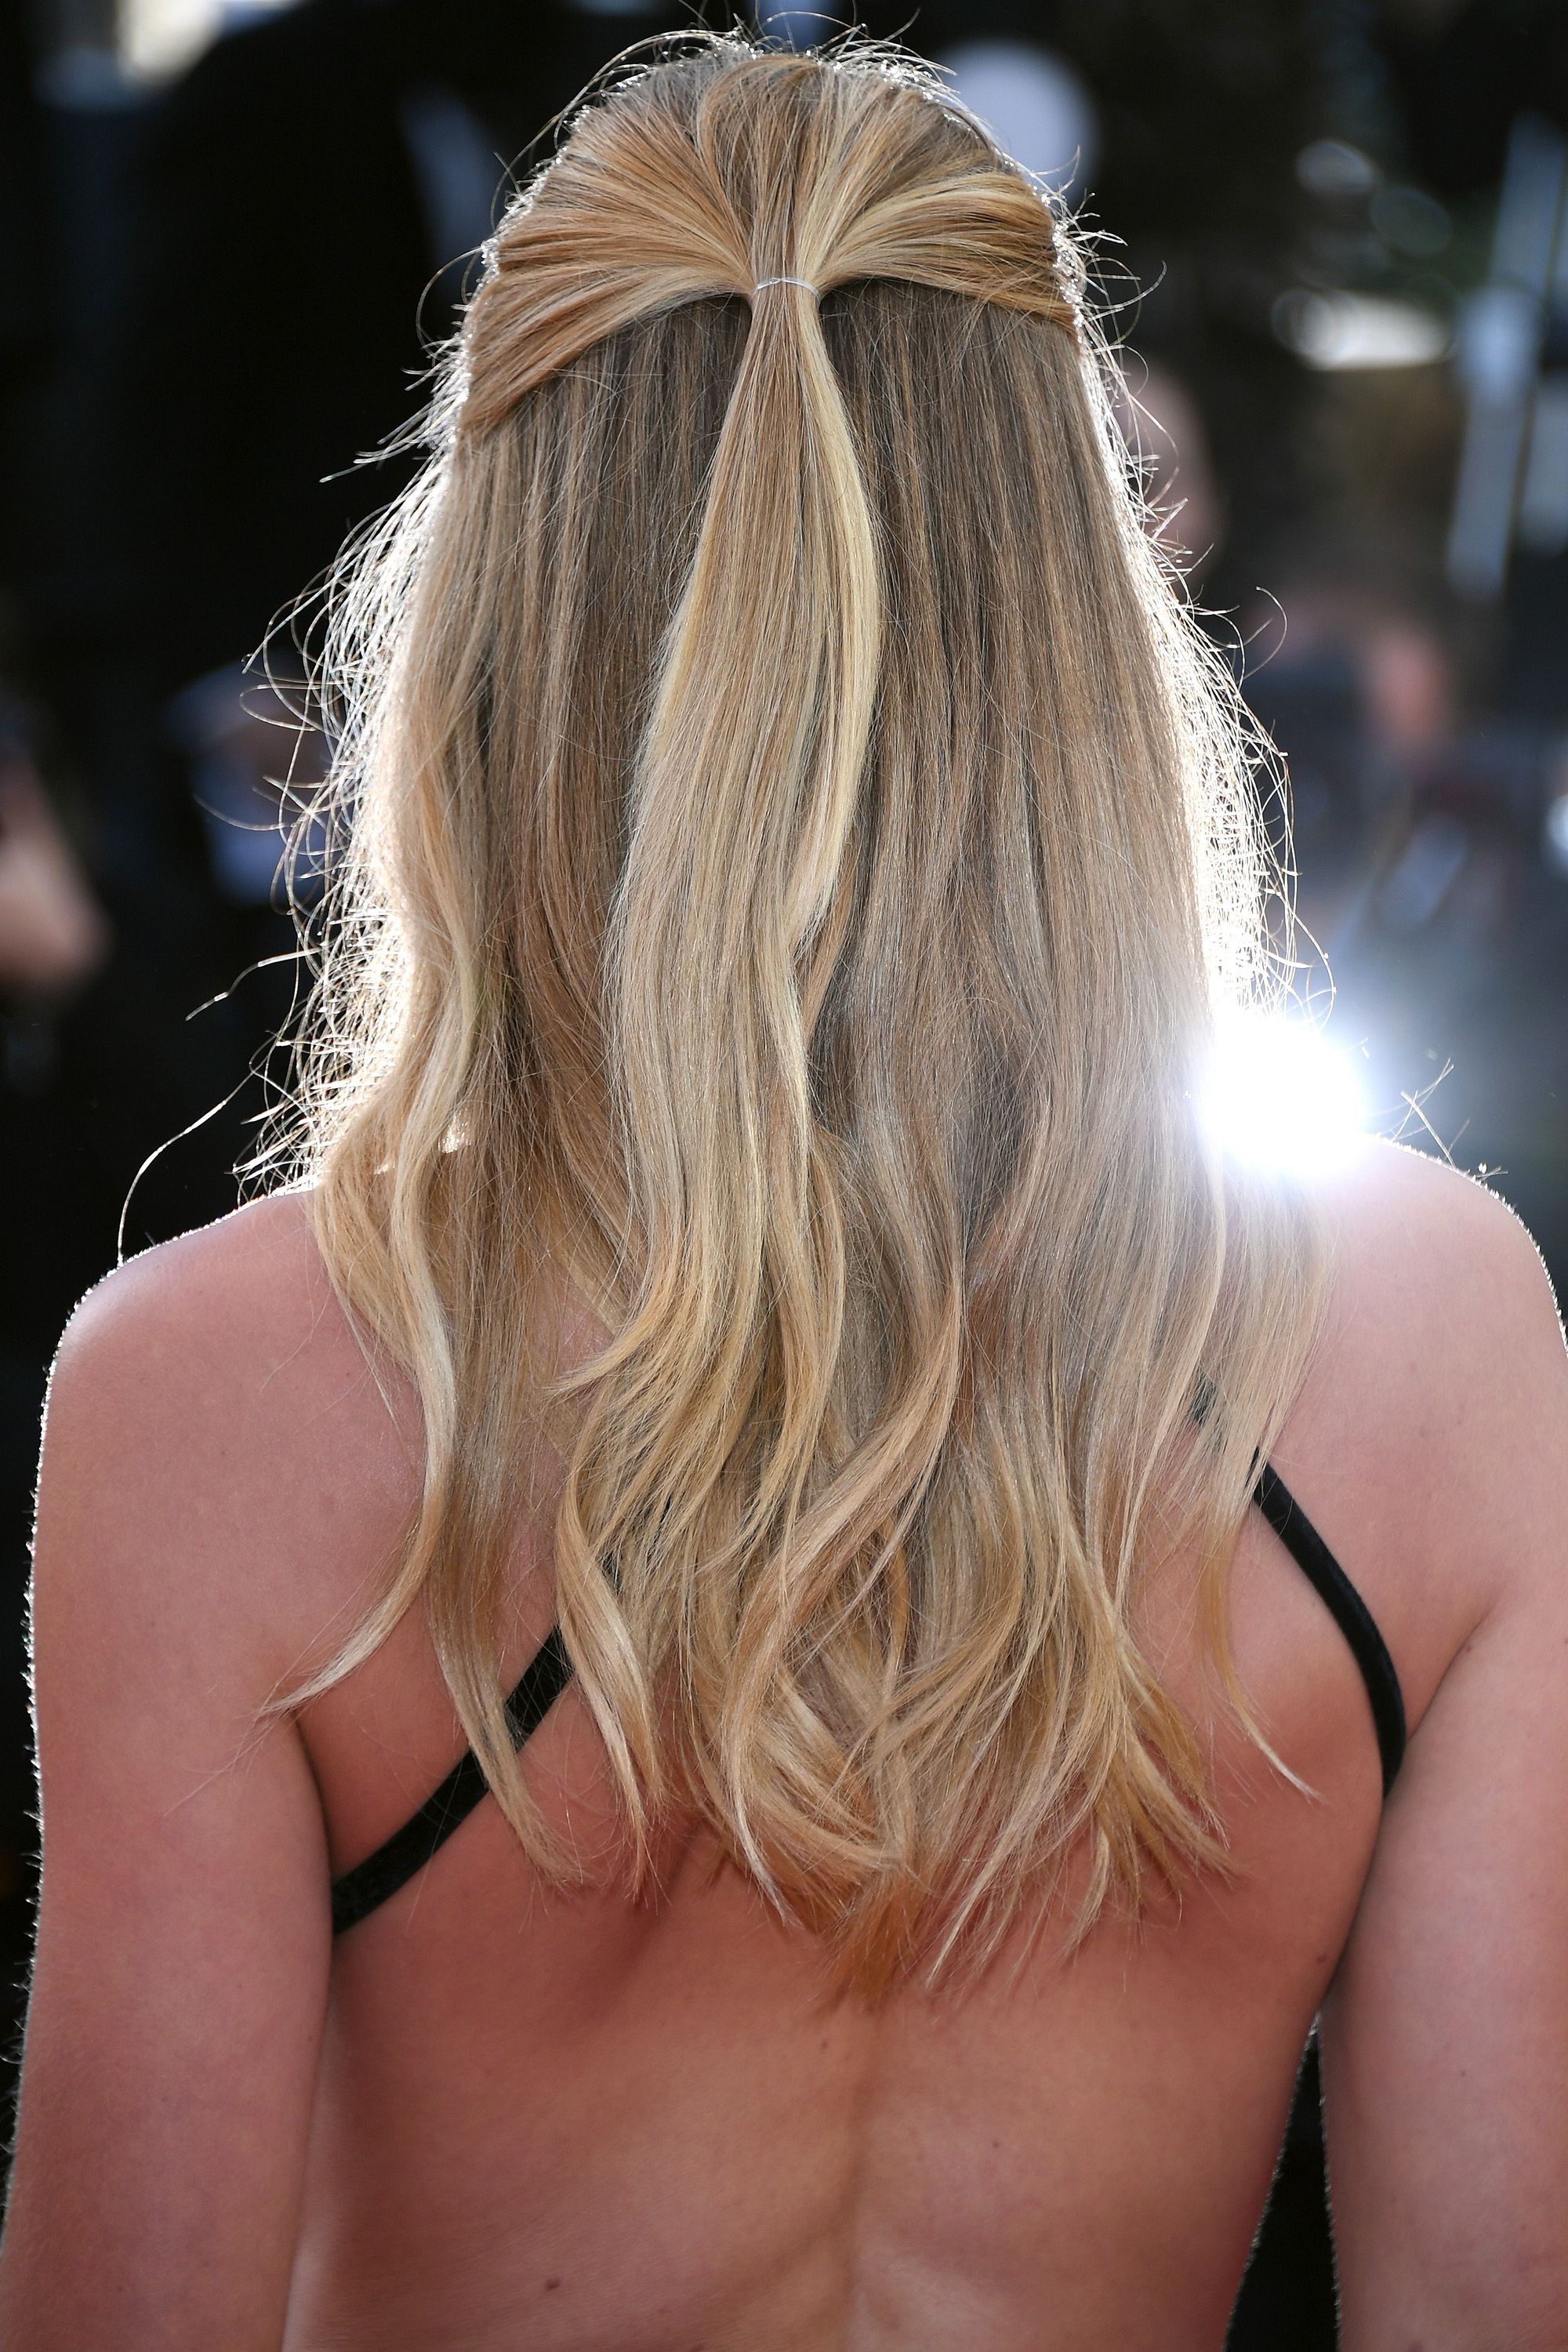 """CANNES, FRANCE - MAY 11:  Model Doutzen Kroes (hair detail) attends the """"Cafe Society"""" premiere and the Opening Night Gala during the 69th annual Cannes Film Festival at the Palais des Festivals on May 11, 2016 in Cannes, France.  (Photo by Venturelli/WireImage)"""